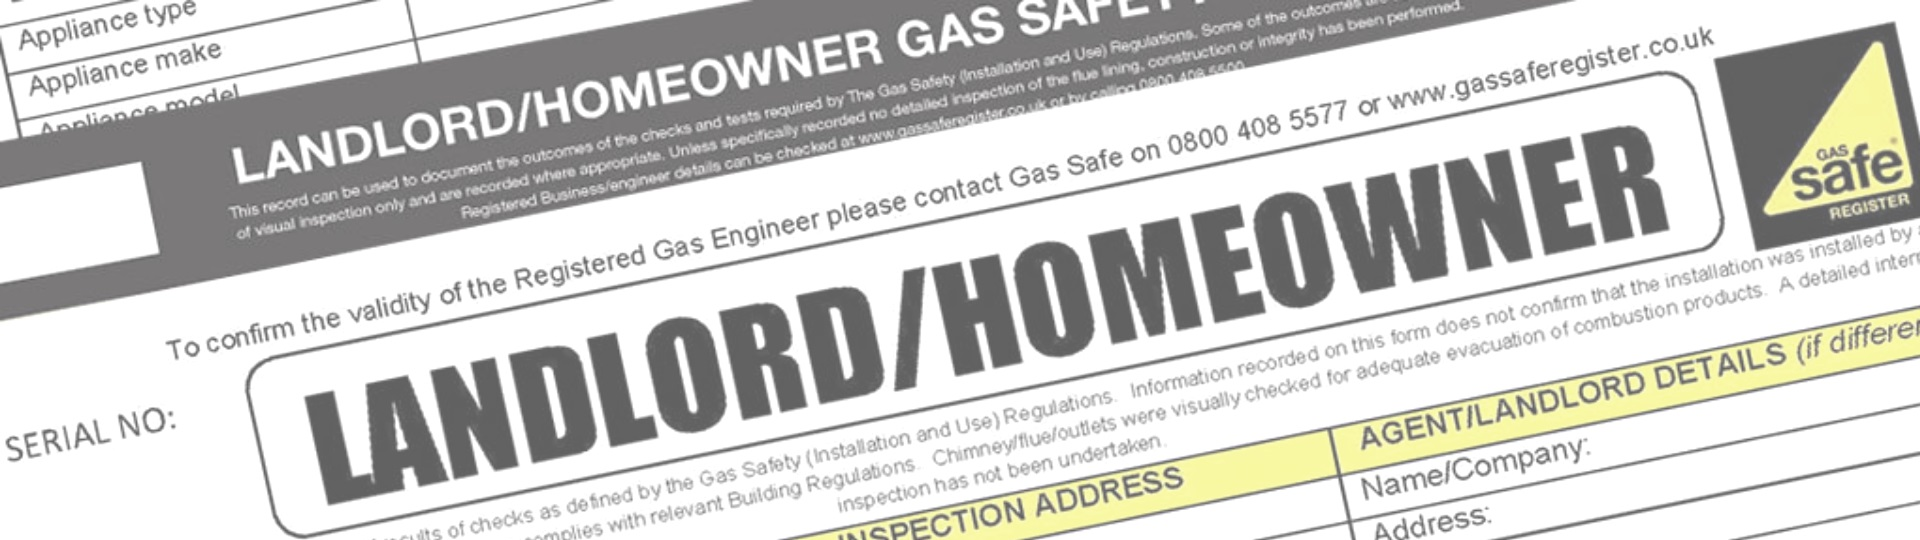 Gas Saftey Certificates Shirehampton